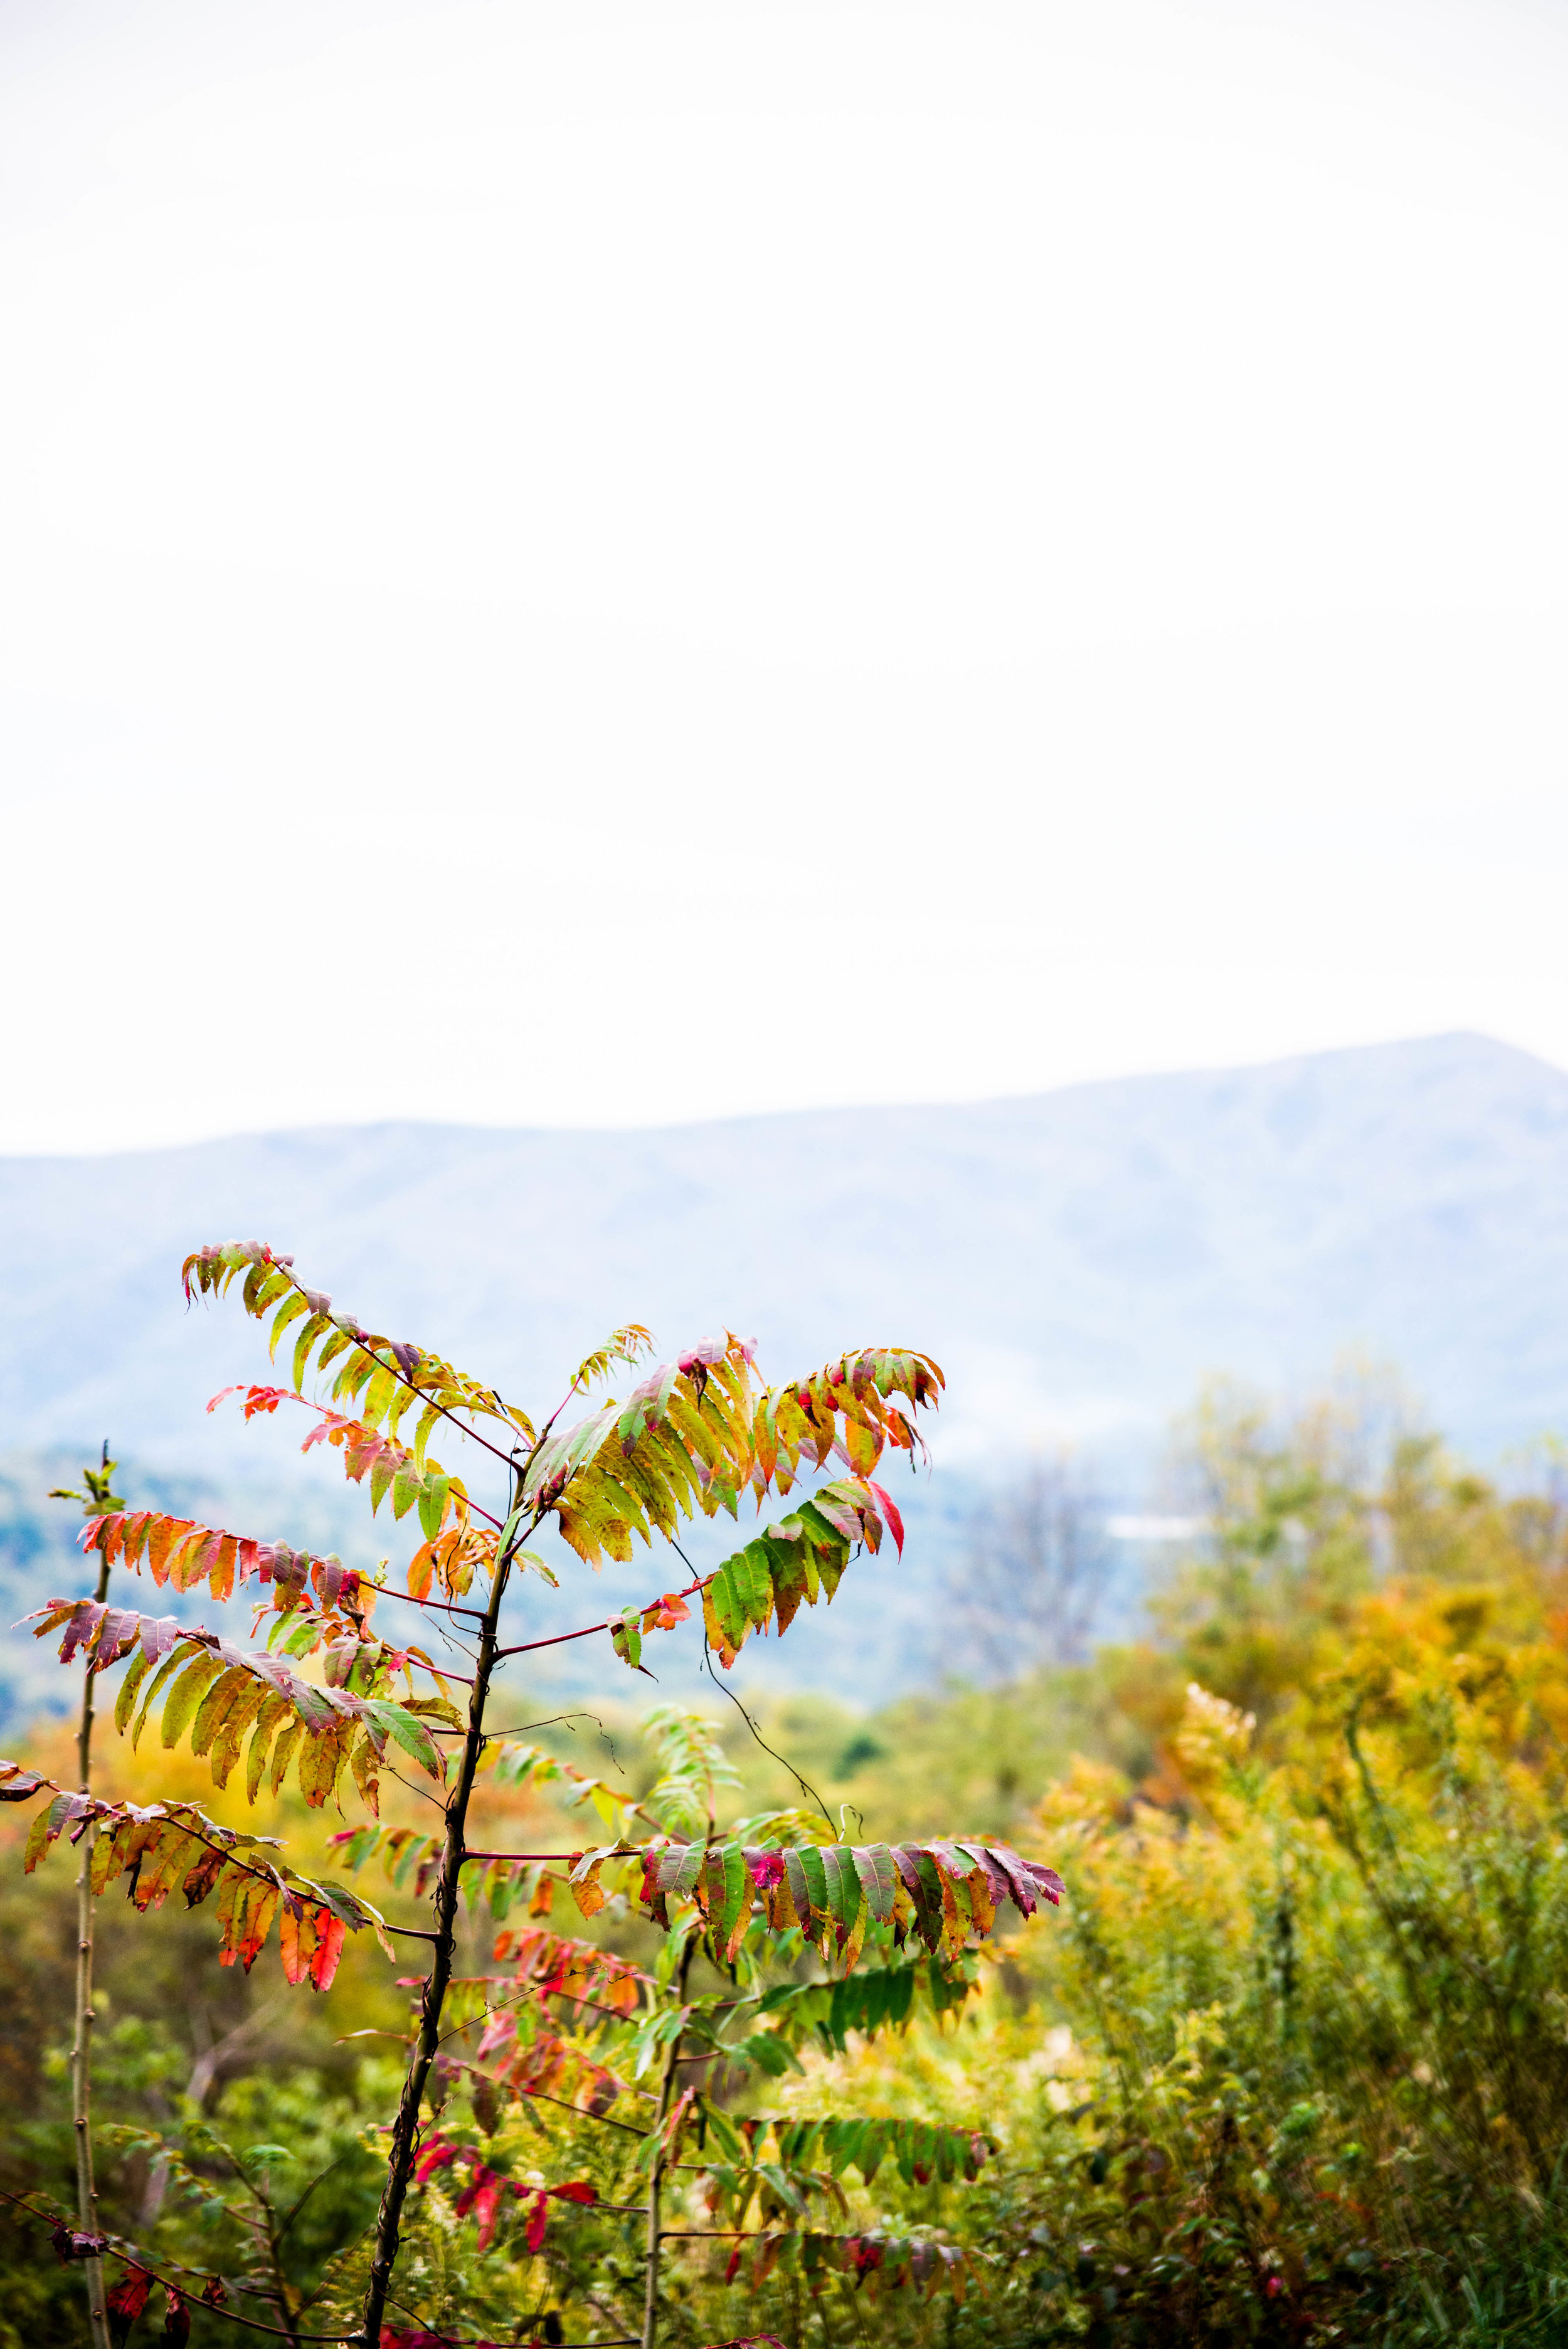 Fall is finally showing it's face in parts of the Blue Ridge Mountains with hints of red, yellow and orange sprinkled throughout.